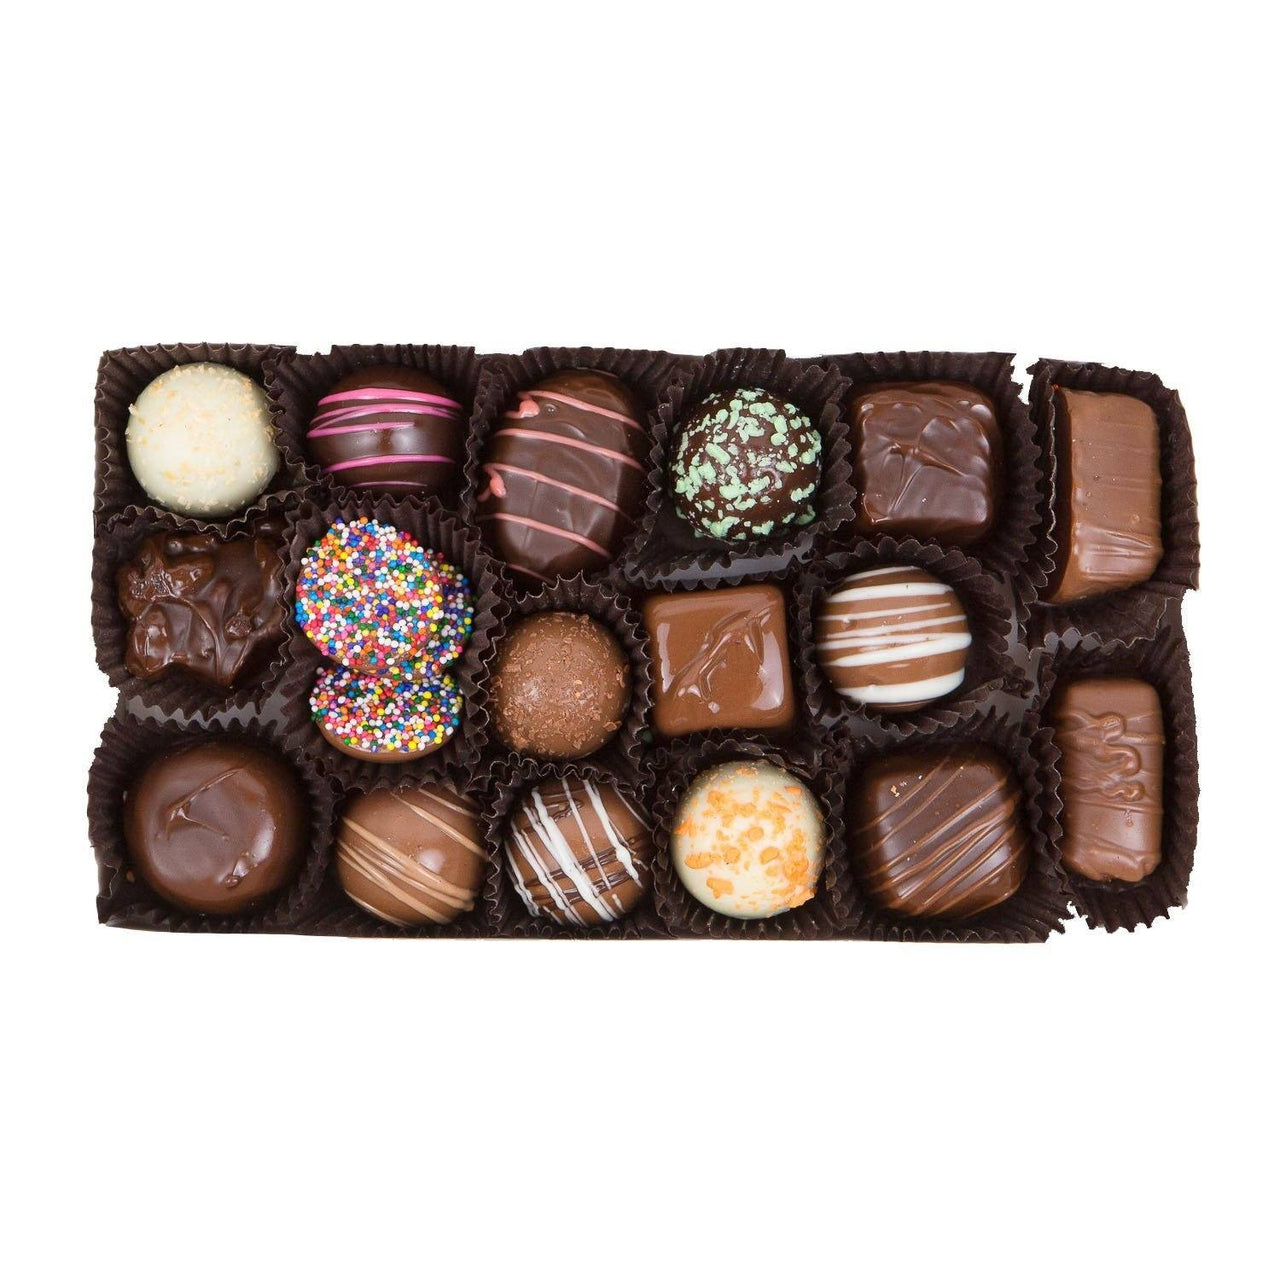 Holiday Gift Baskets - Chocolate Assortment Gift Box - Jackie's Chocolate (4336497361011)